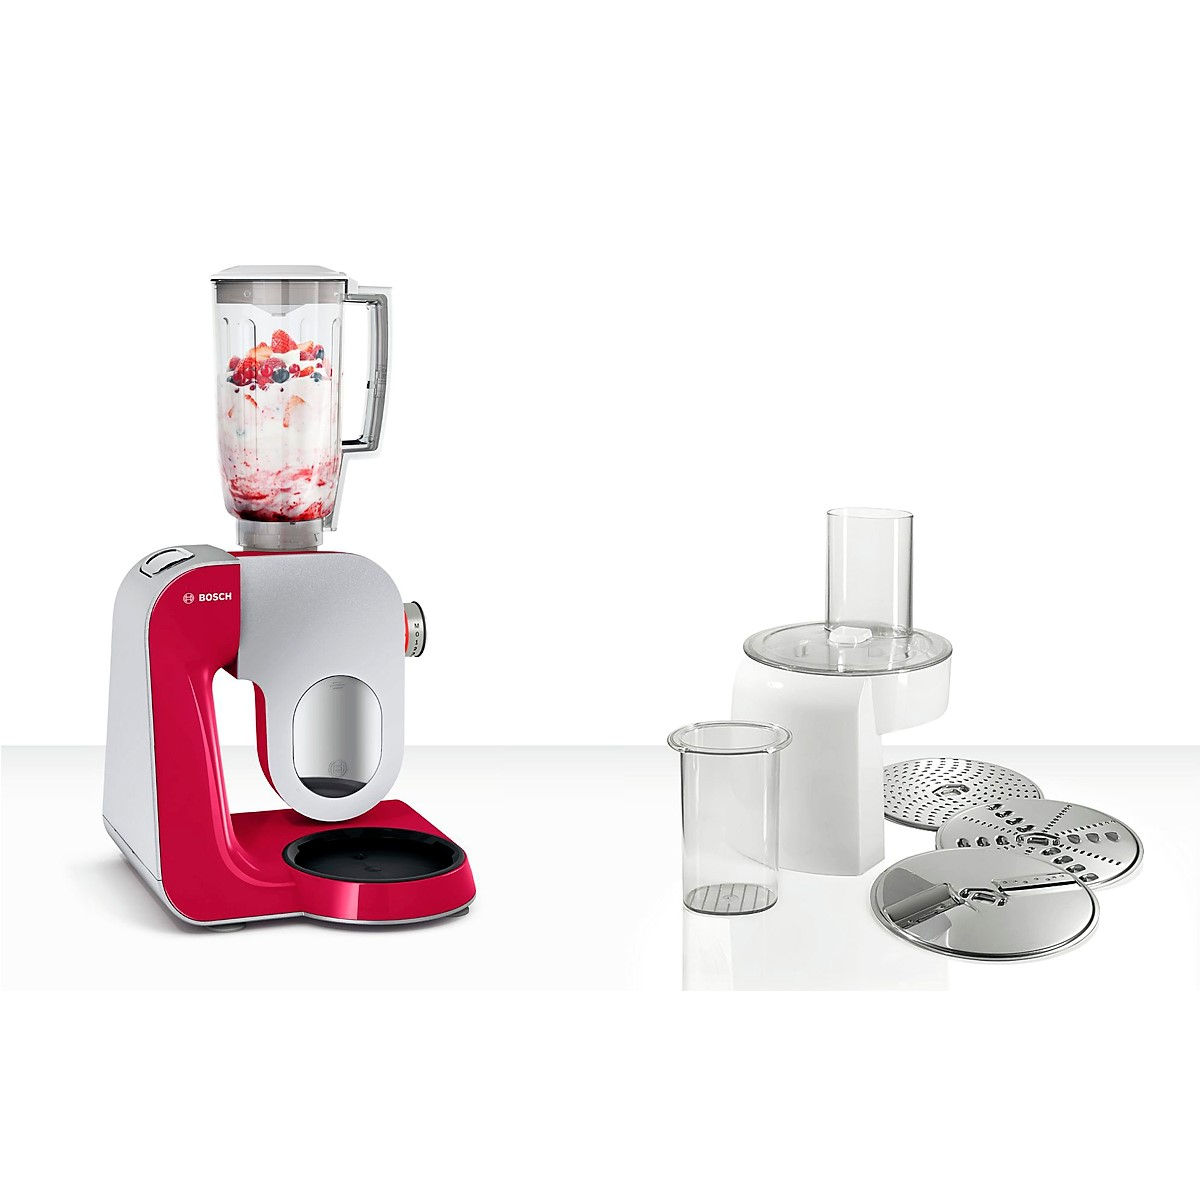 Bosch - Kitchen Machine MUM5 Styline Colour red diamond silver 2